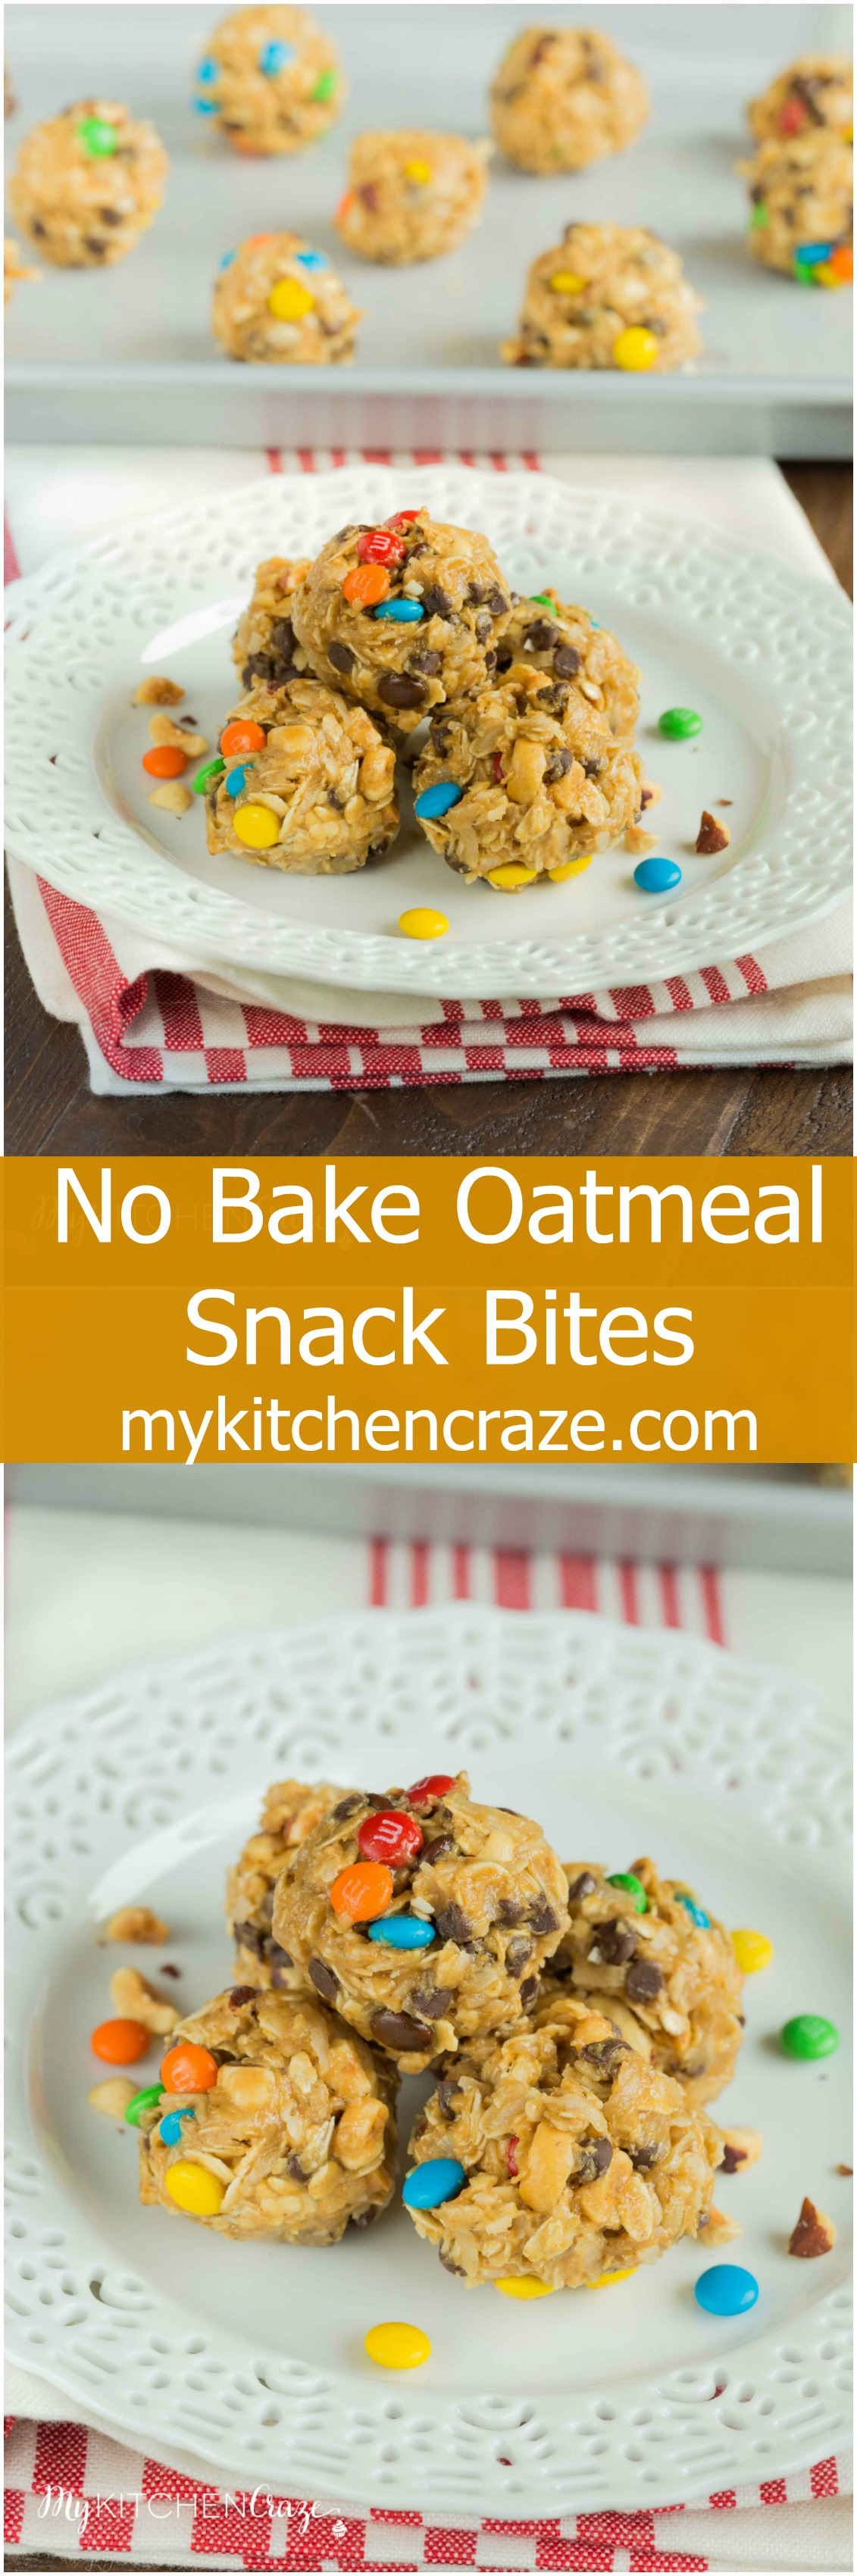 No Bake Oatmeal Snack Bites ~ mykitchencraze.com ~ Enjoy these easy & delicious snack bites on those afternoons you're craving sweets!!